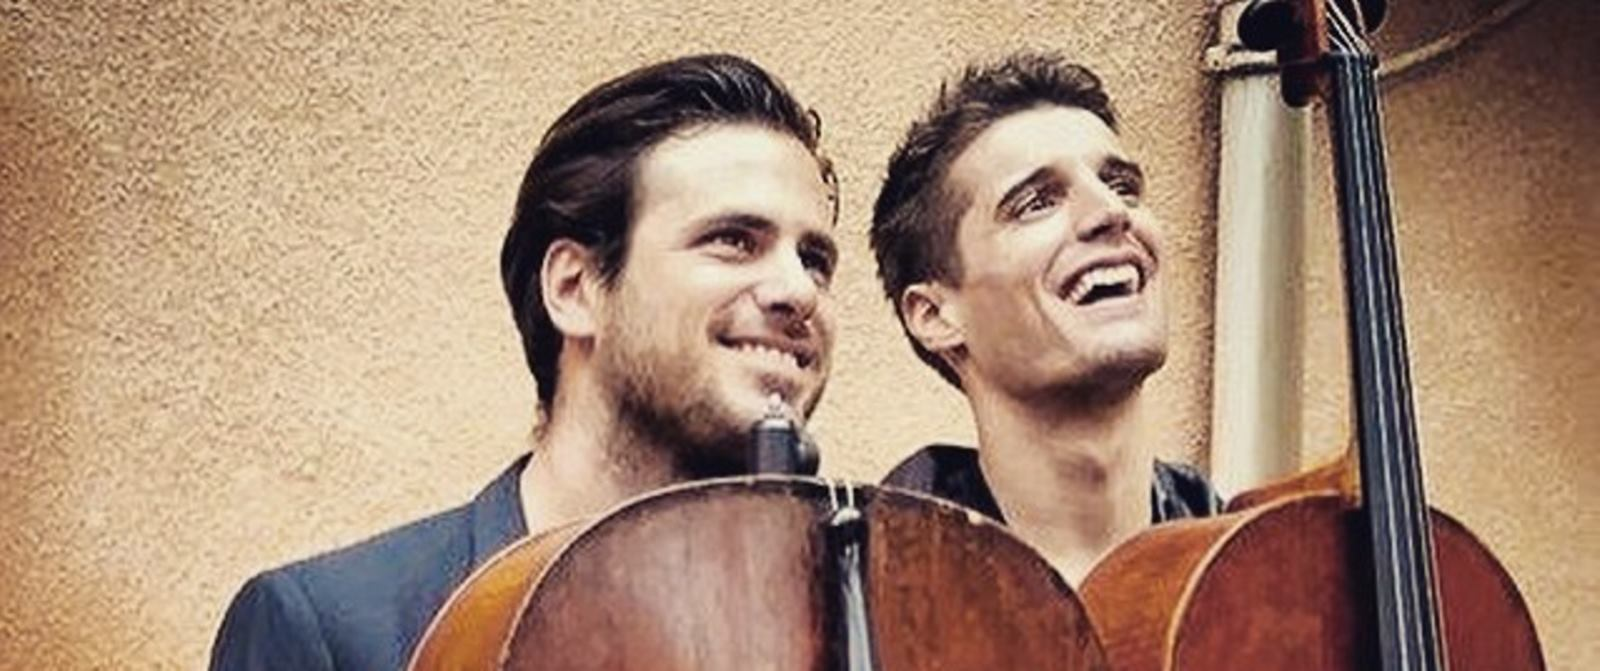 "VIDEO: 2CELLOS Poznati umjetnici objavili video spot za pjesmu ""Celloverse"""